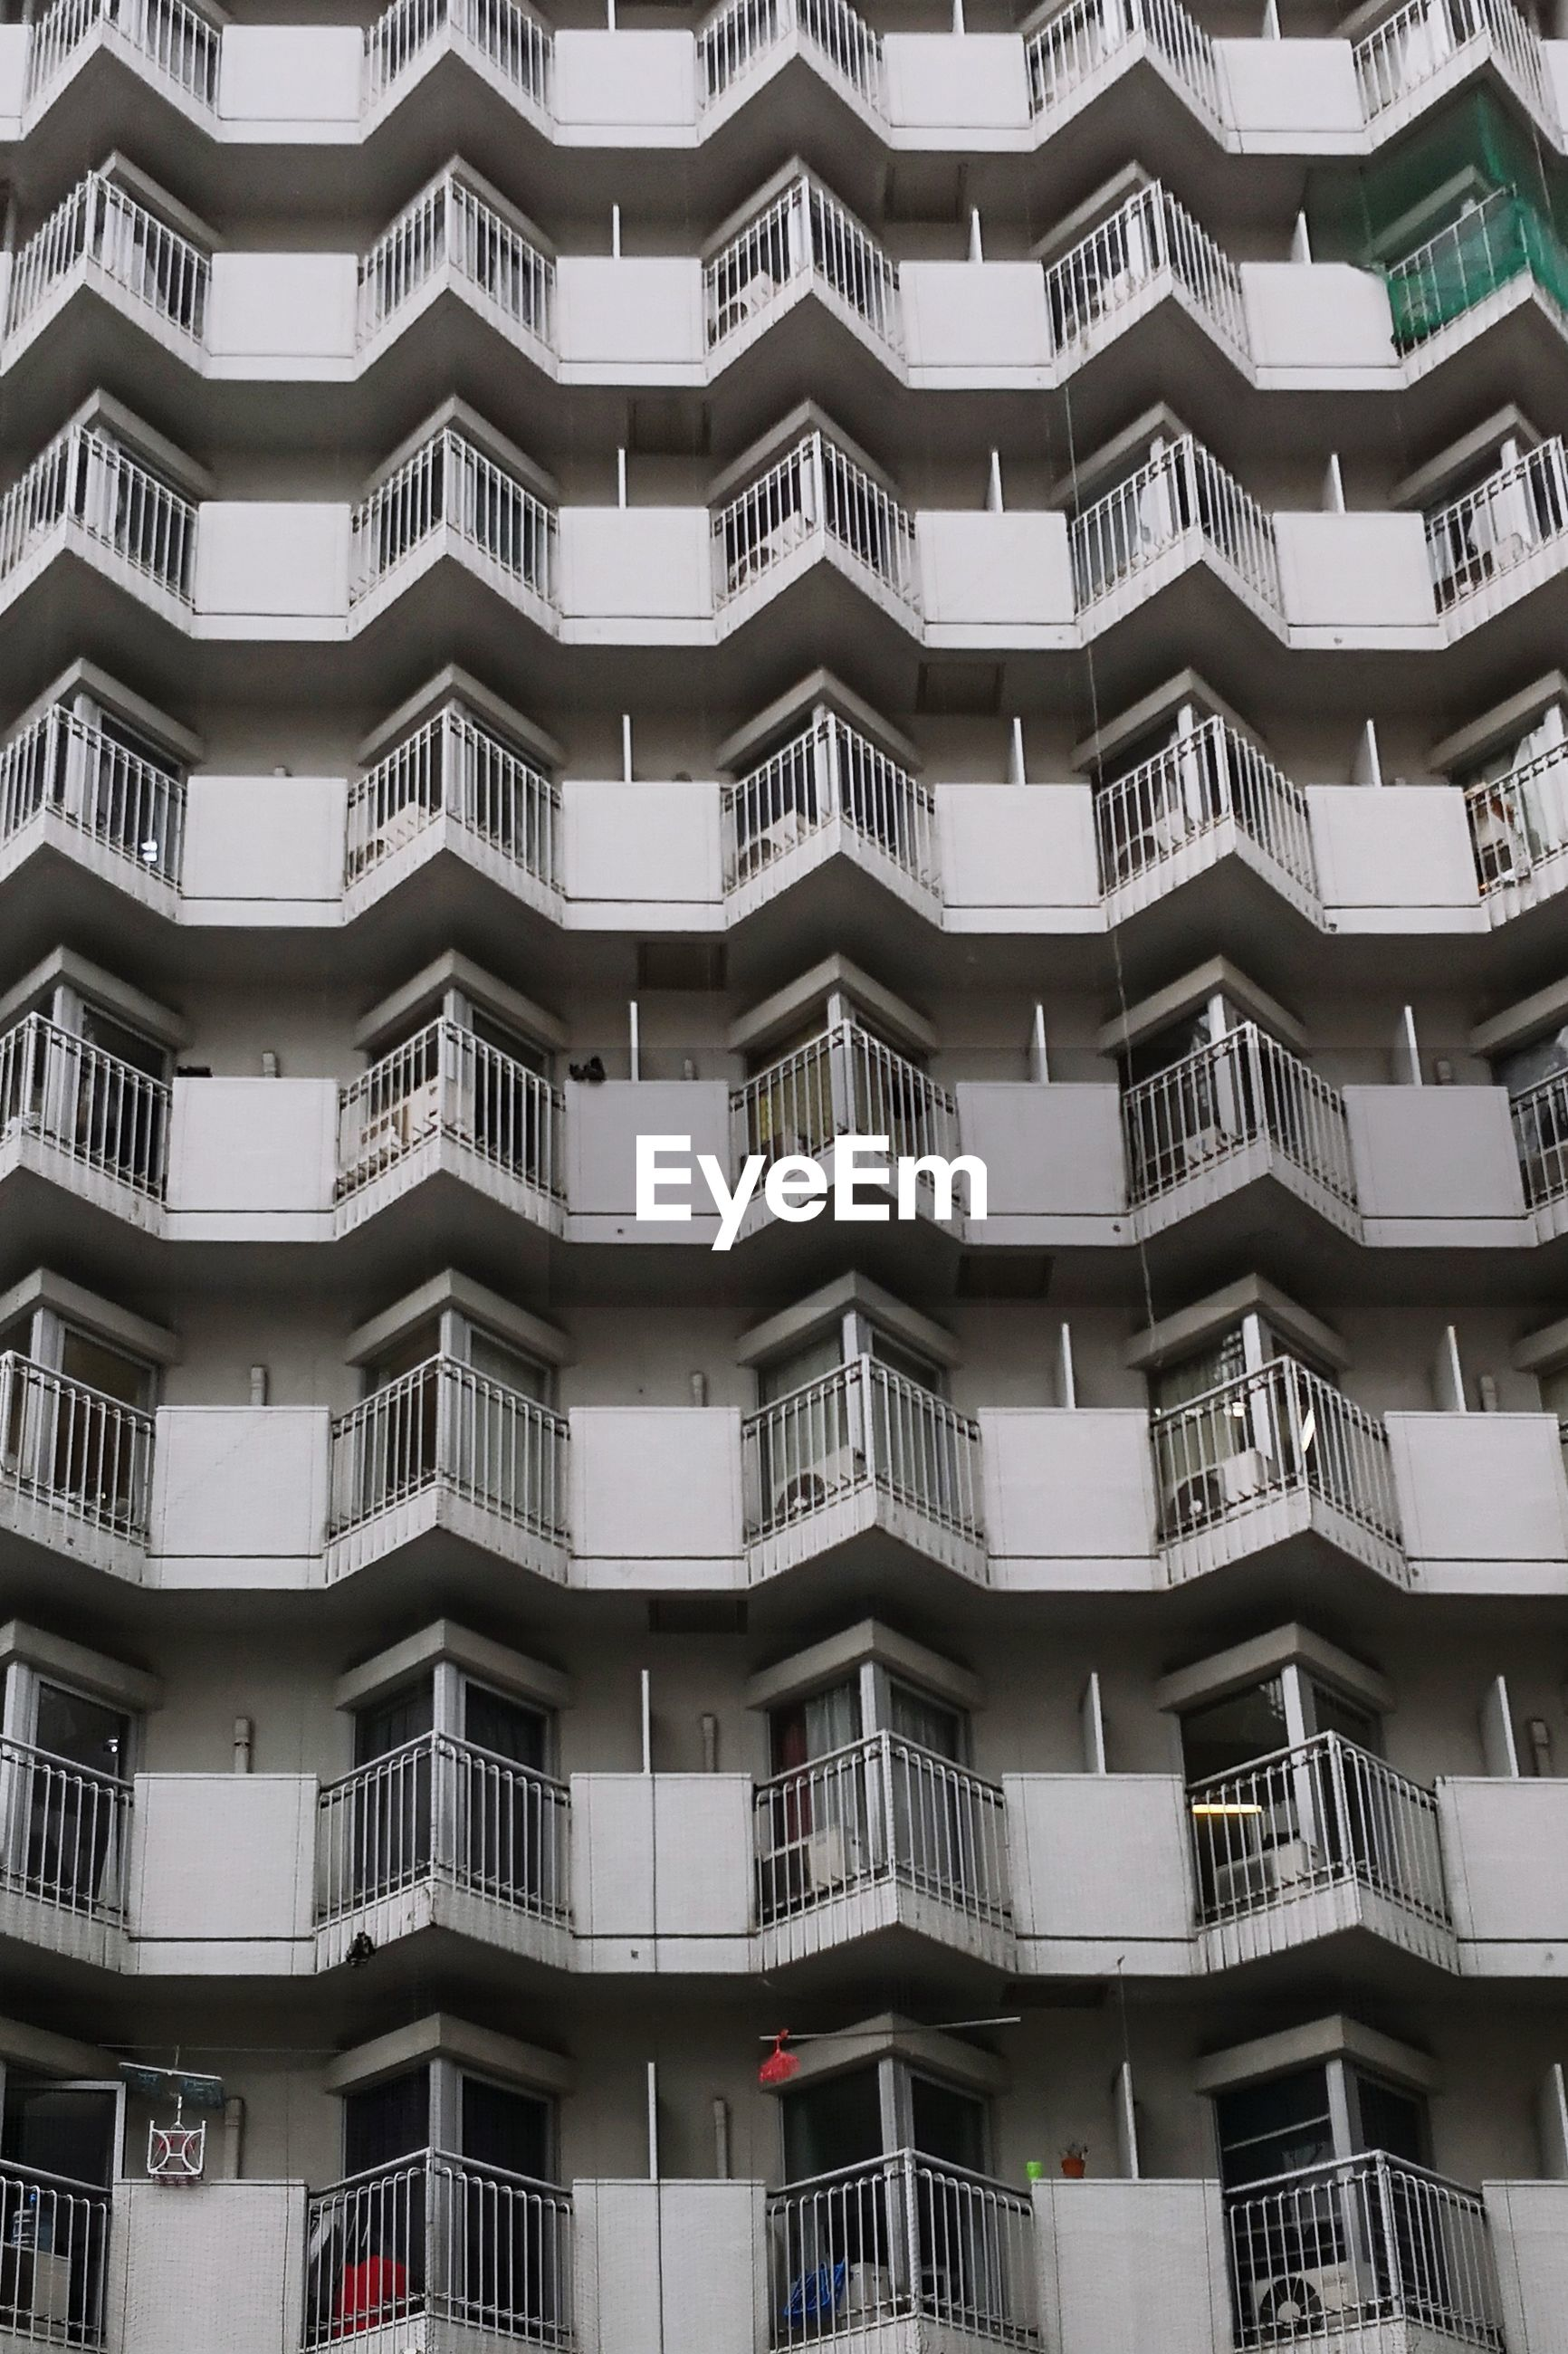 FULL FRAME SHOT OF APARTMENT BUILDING WITH WINDOWS